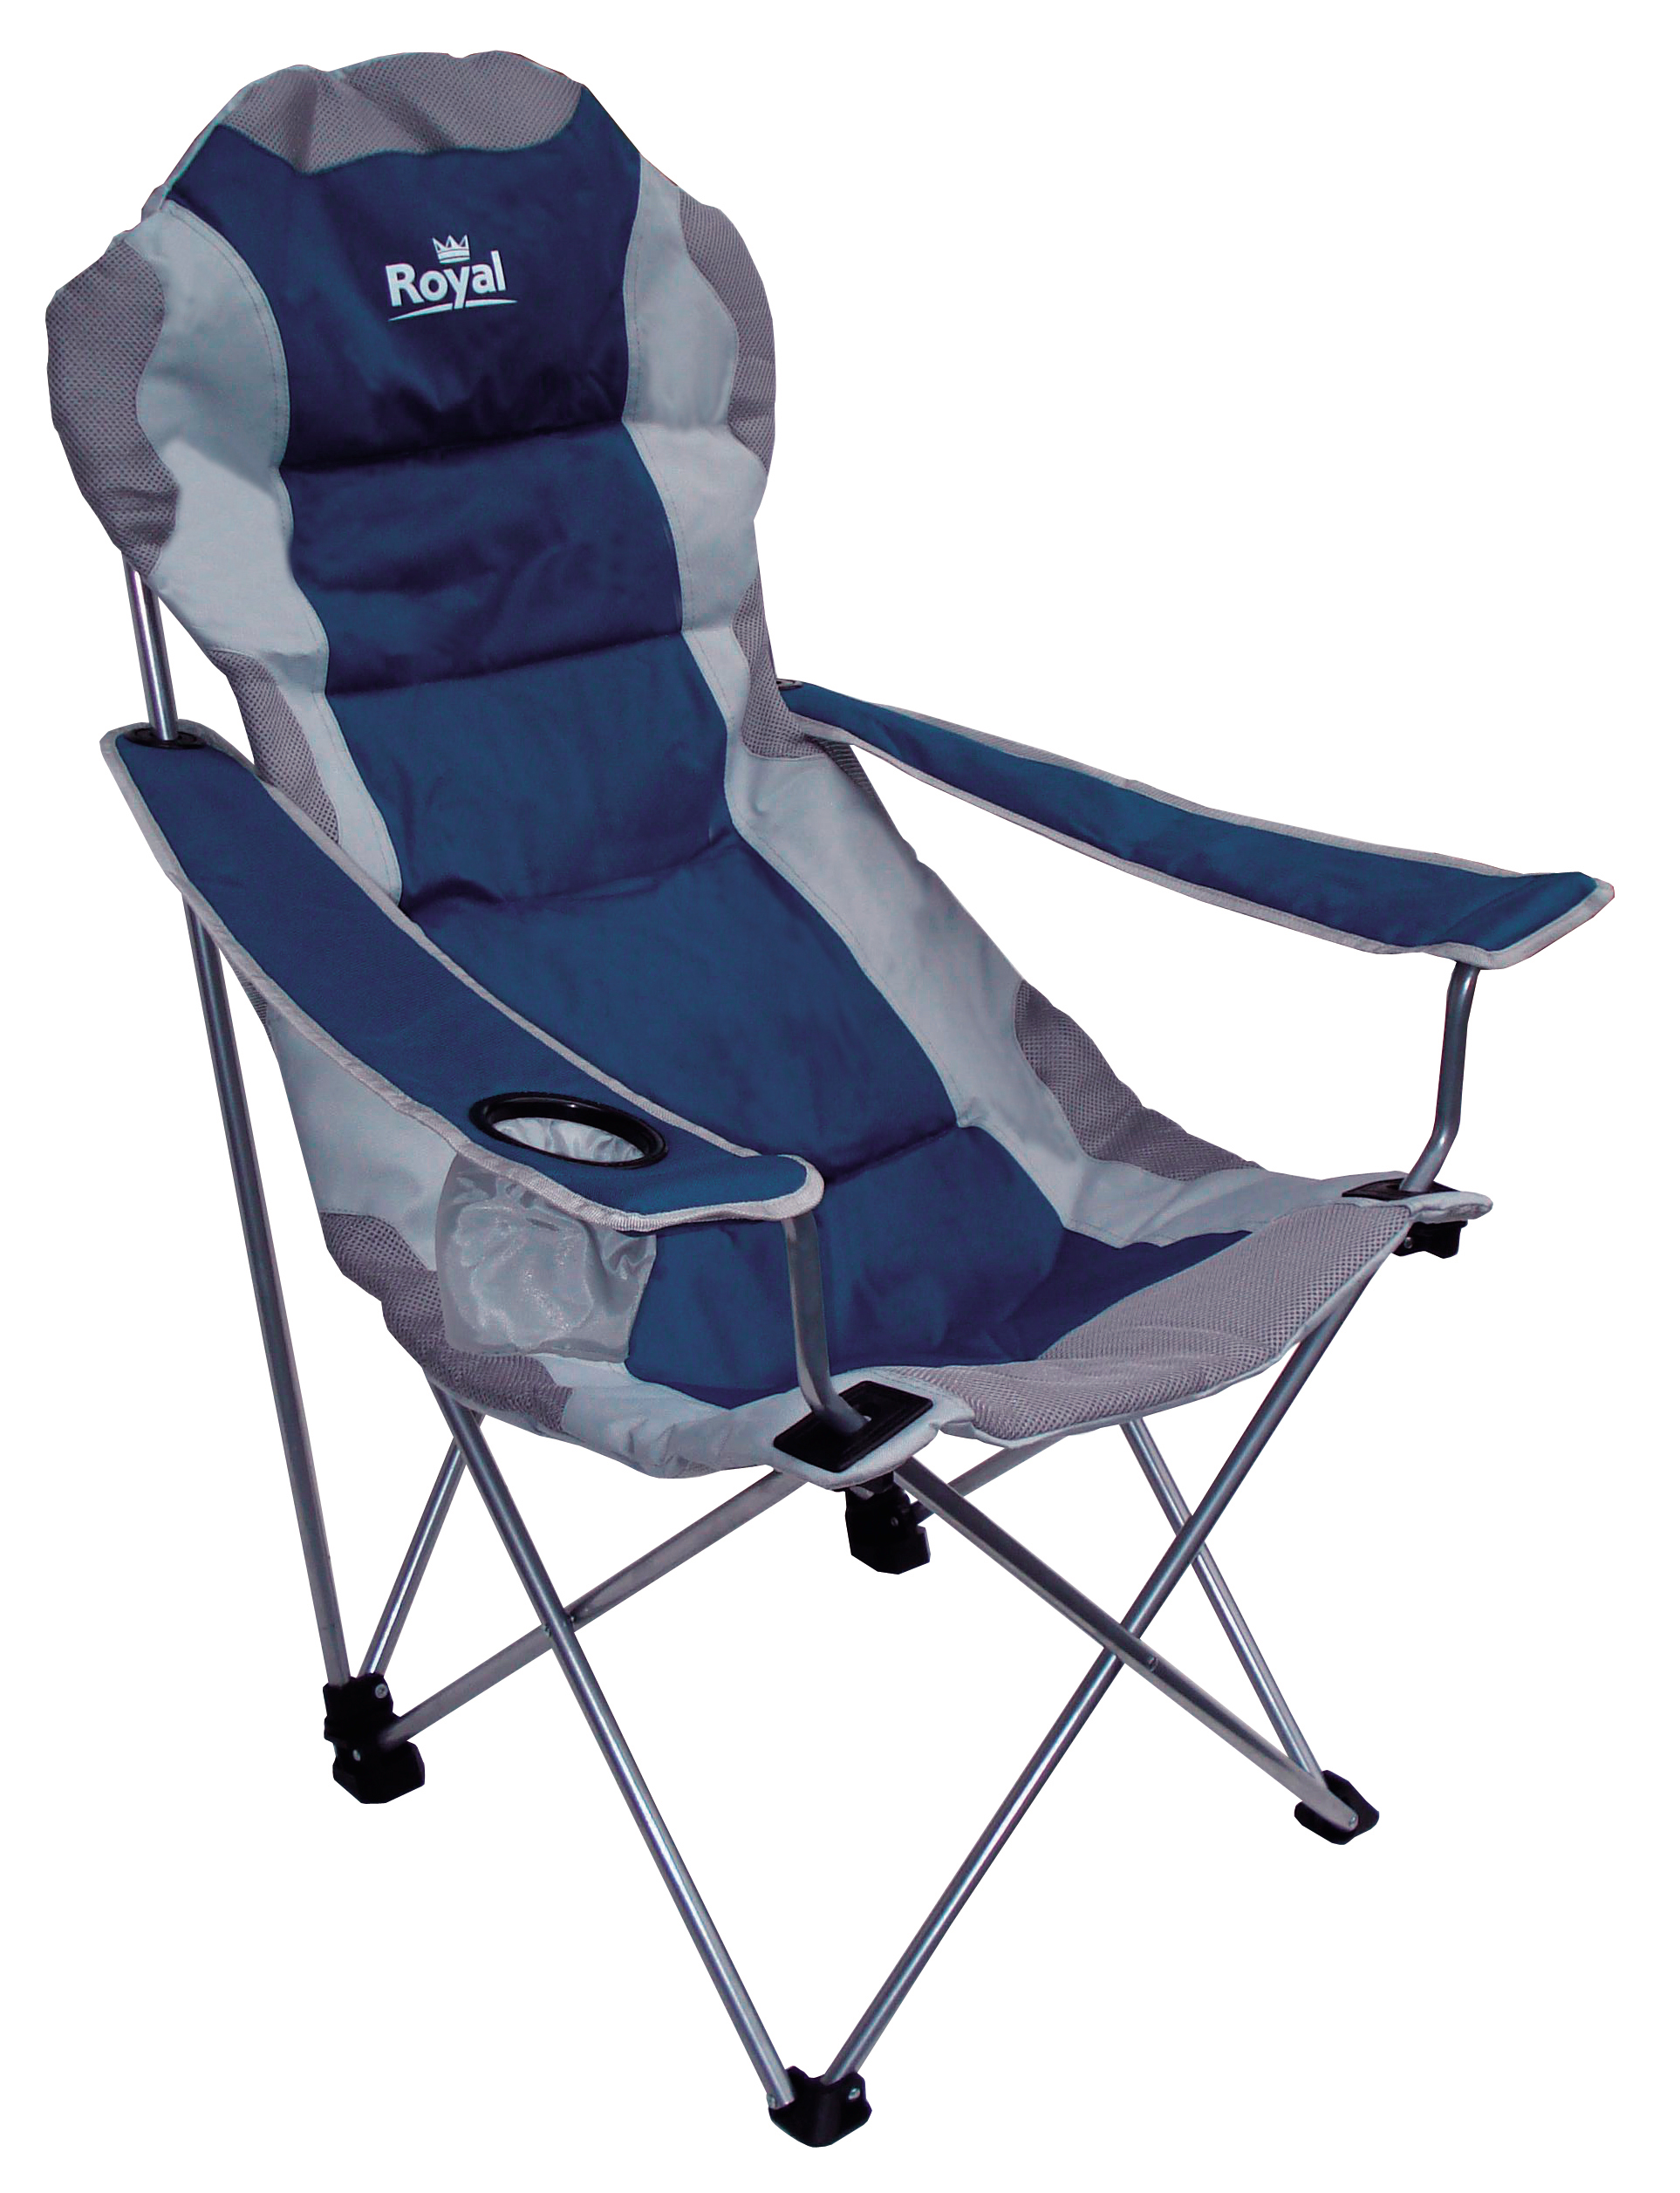 Best Camp Chair Folding Chairs For Camping